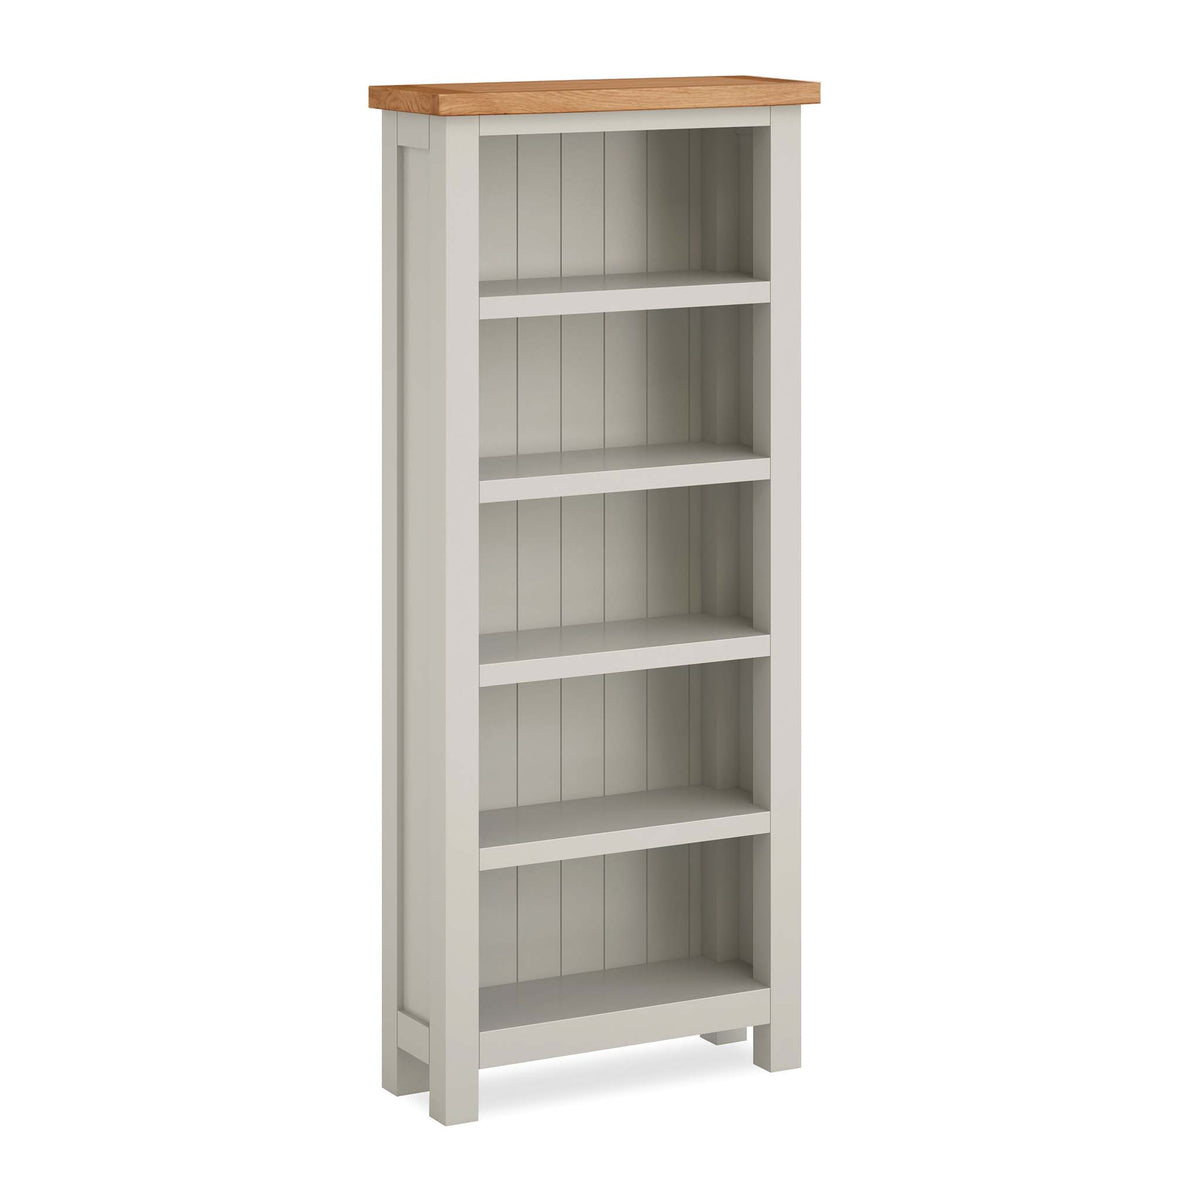 Dorset Stone Grey Narrow Bookcase by Roseland Furniture